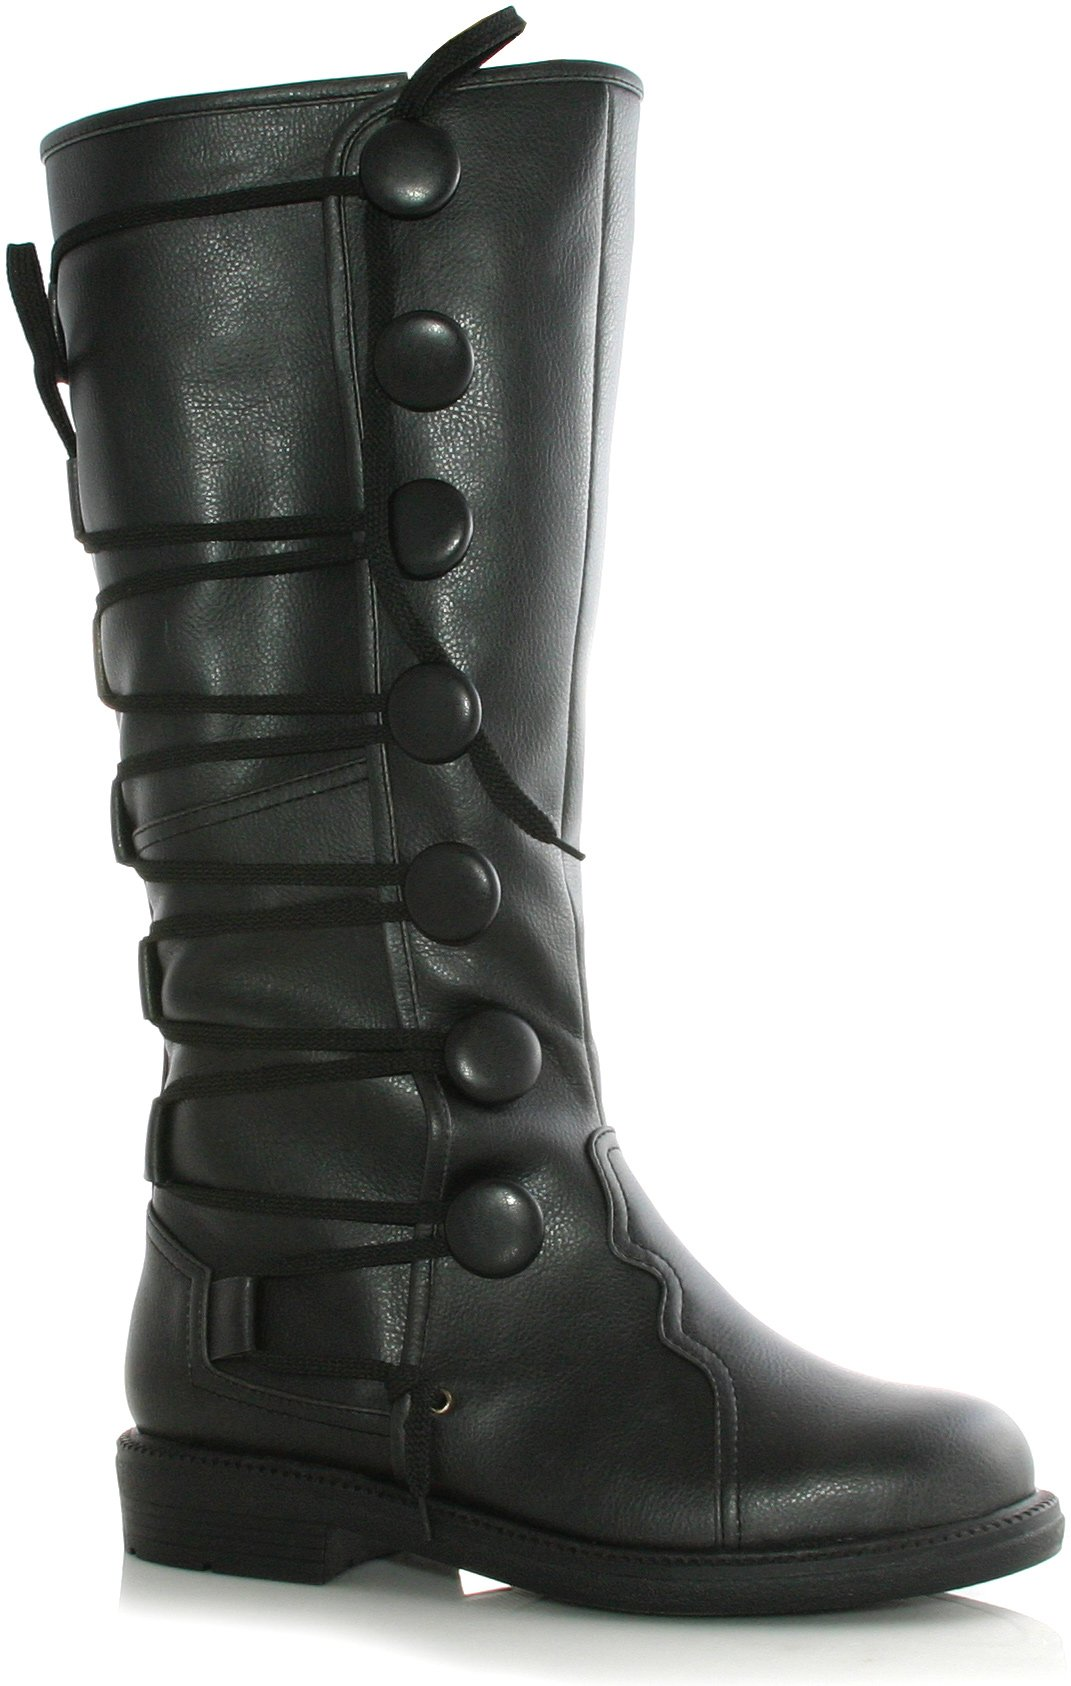 Ellie Shoes Ren Adult Boots - Small (8-9) - Black by Ellie Shoes